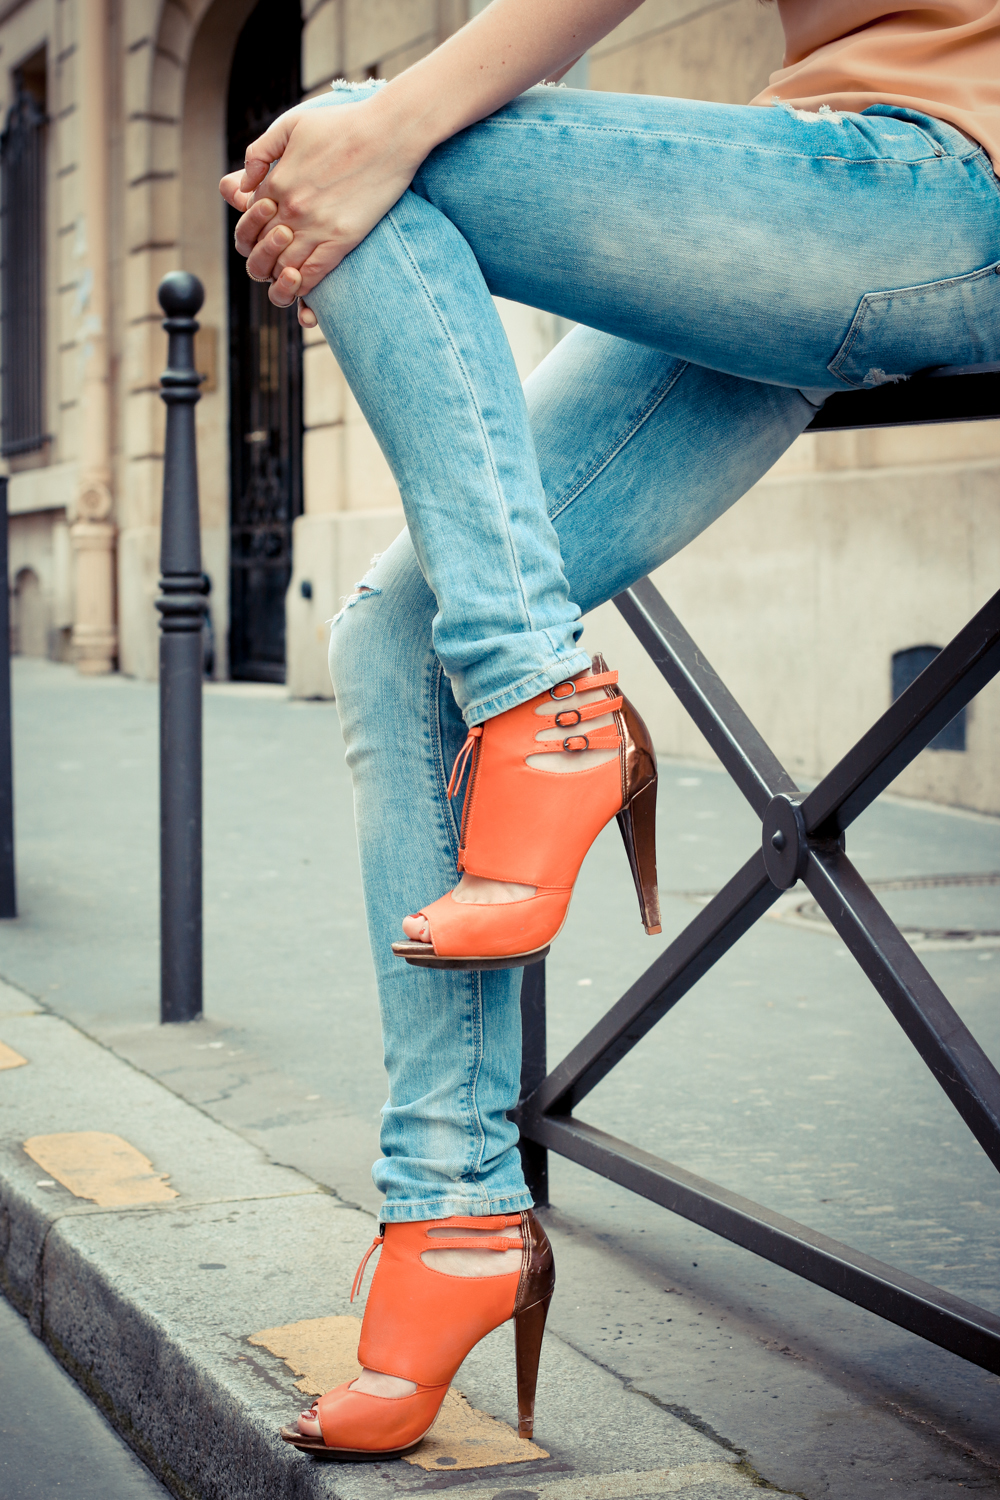 Linda-Rella-Ripped-Jeans-Buffalo-High-Heels-Orange-Pastell-Fashionblogger-8